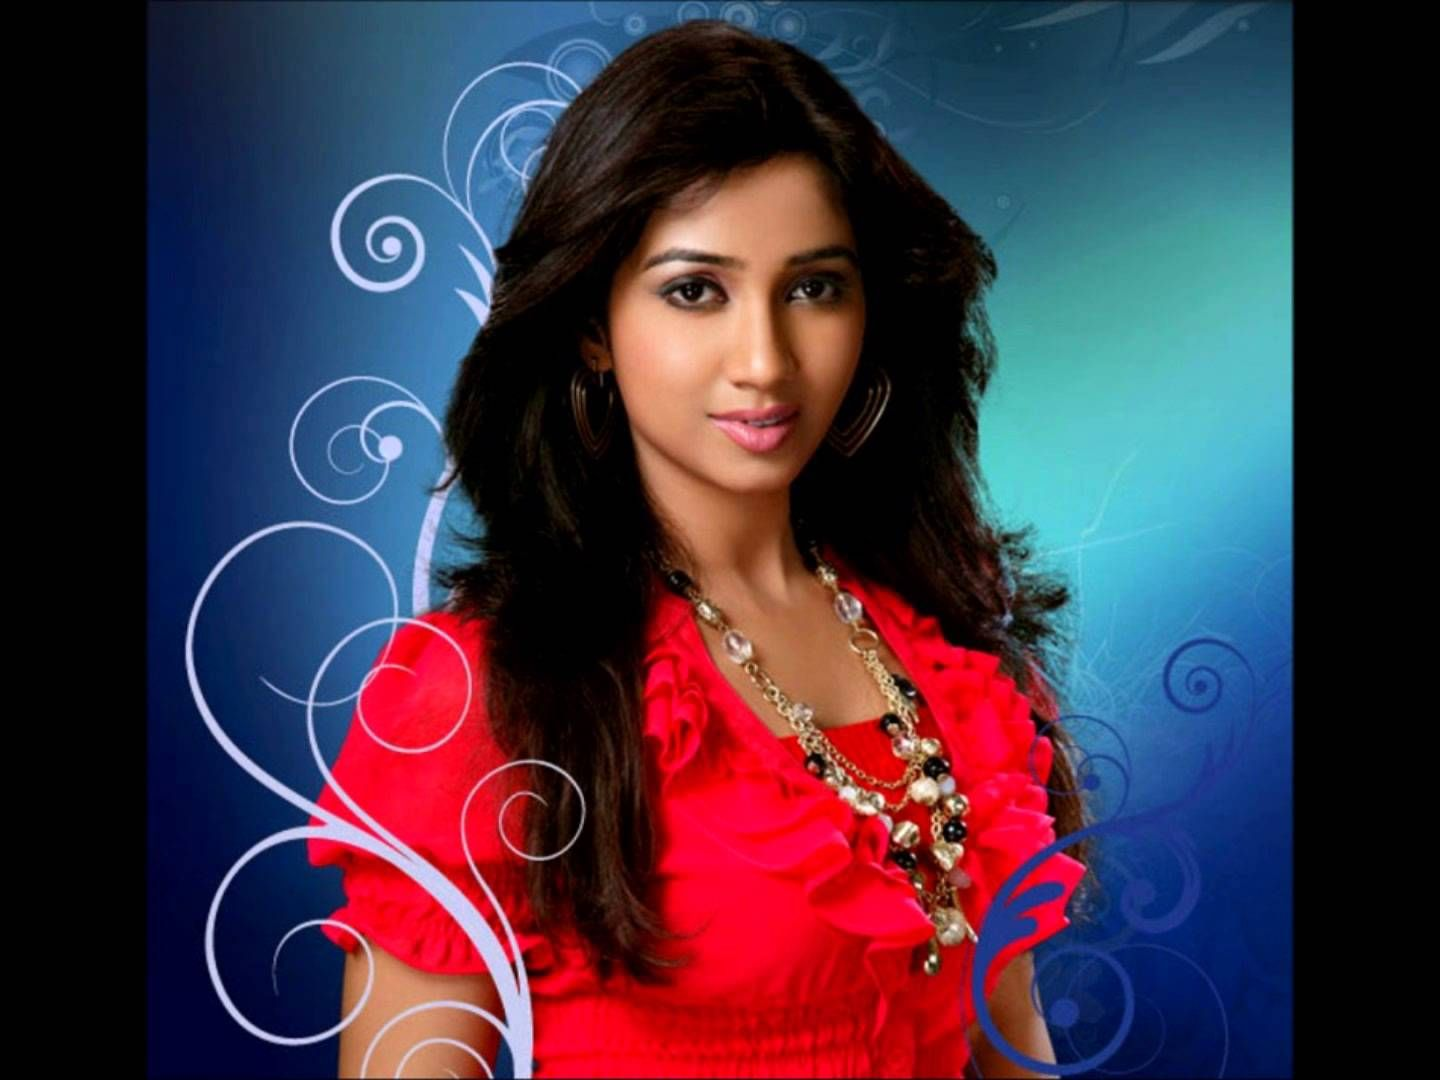 Kabhi Jo Badal Barse By Shreya Ghoshal The Female Version Of This Song Shreya S Voice Is Unbelievable With Images Songs Trending Music Bollywood Songs